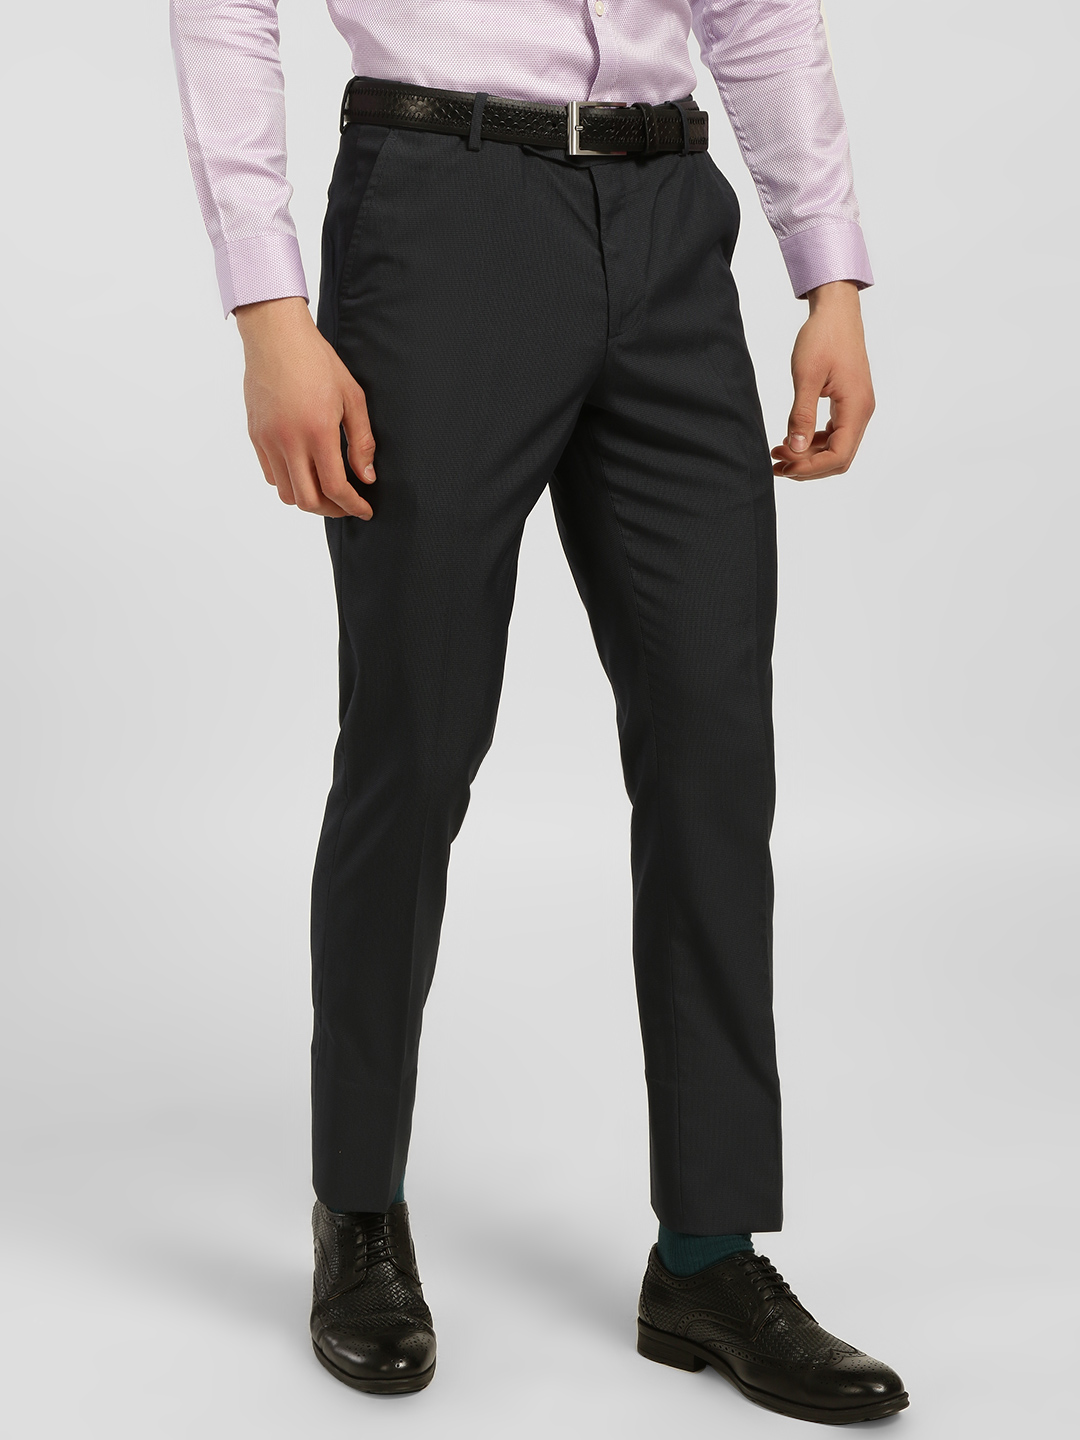 Indigo Nation Blue Woven Slim Formal Trousers 1